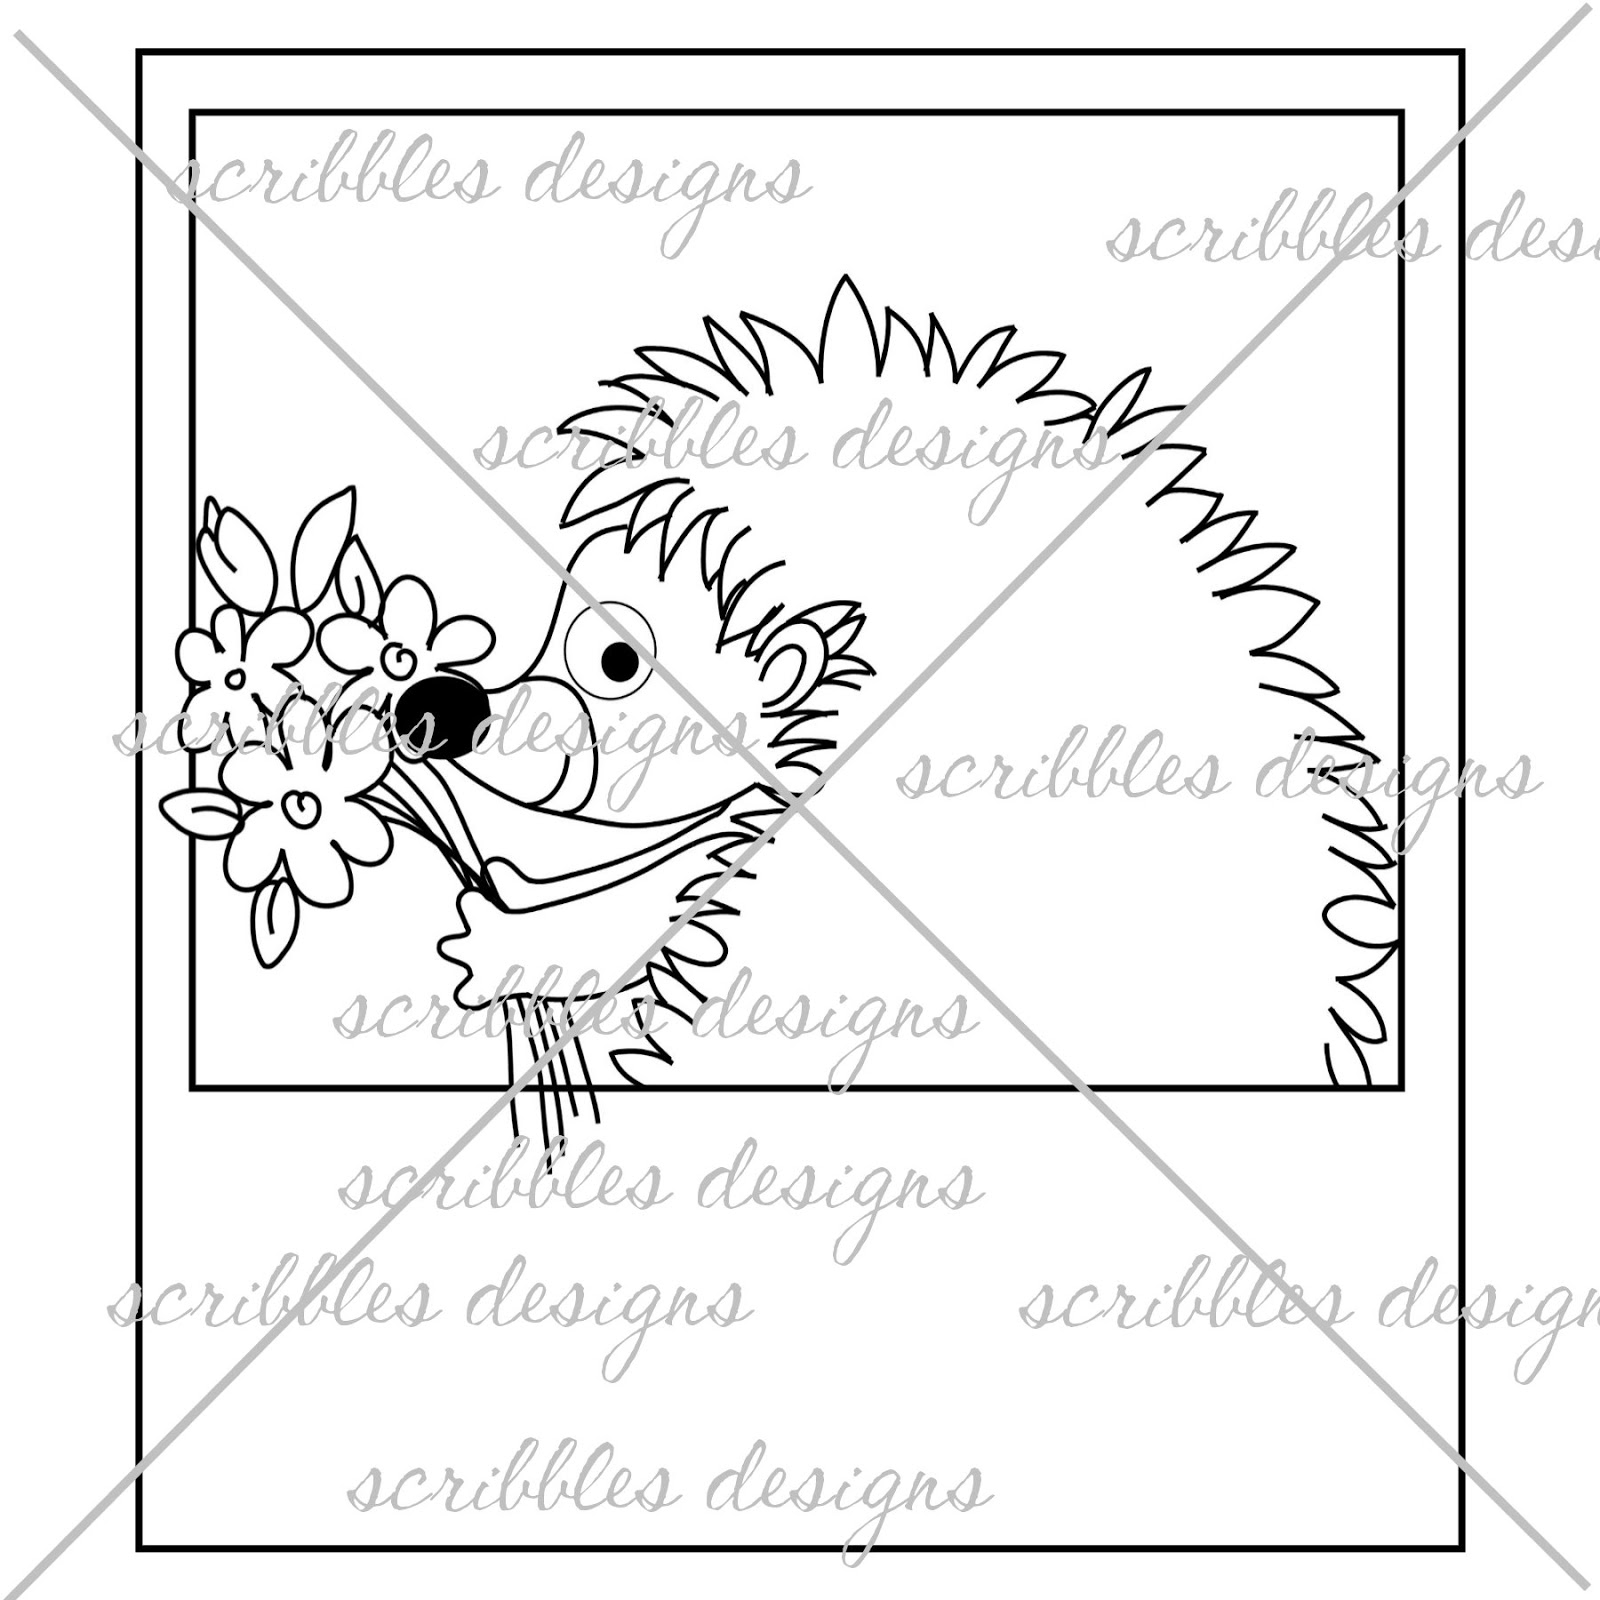 http://buyscribblesdesigns.blogspot.ca/2014/03/236-hedgie-snap-shot-300.html